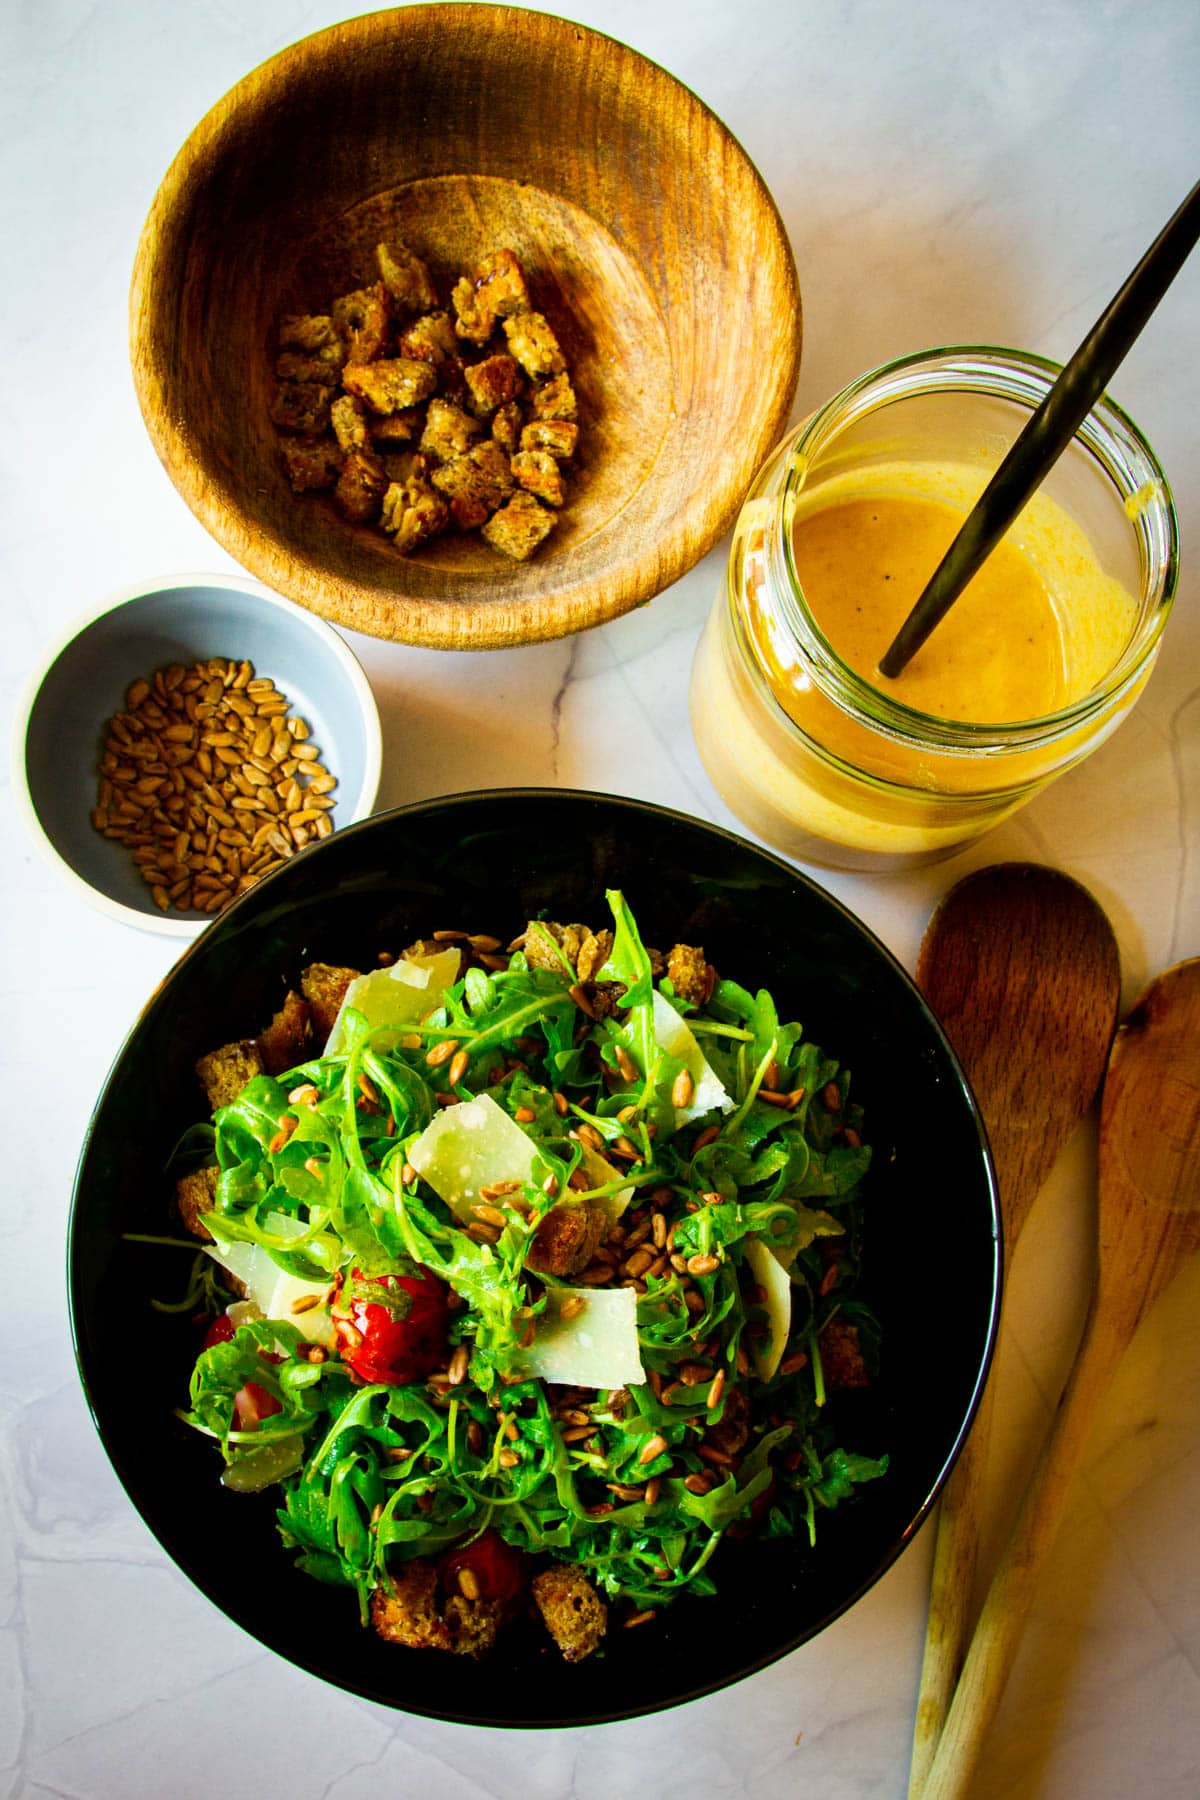 A rocket salad, sunflower dressing, croutons and sunflower seeds on the table.